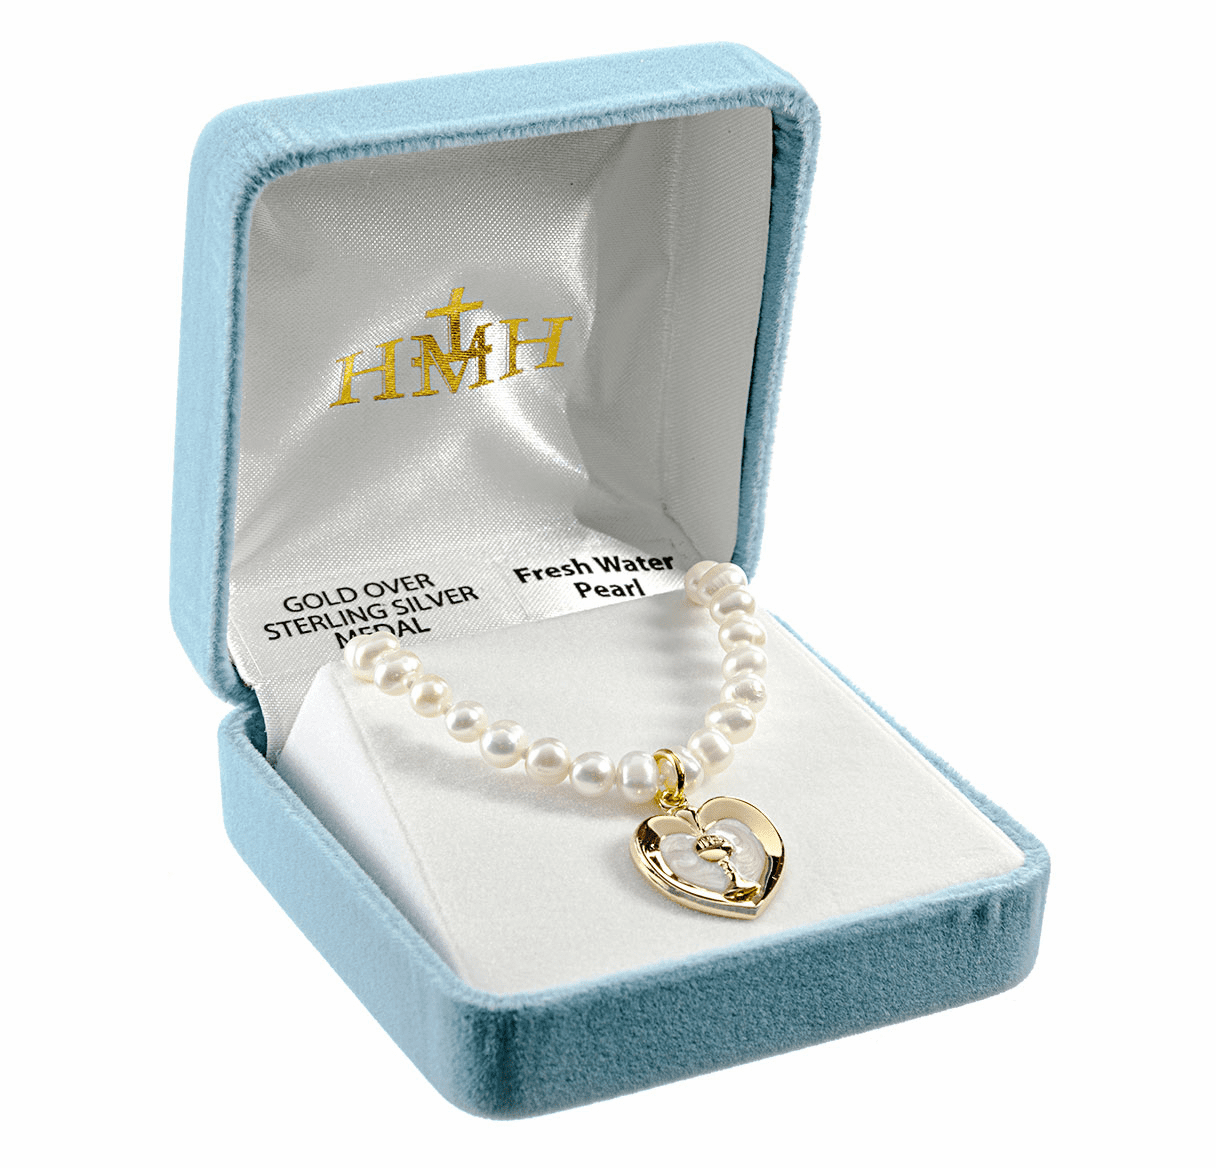 HMH Religious Communion Heart Chalice Sterling Freshwater Pearls Necklace